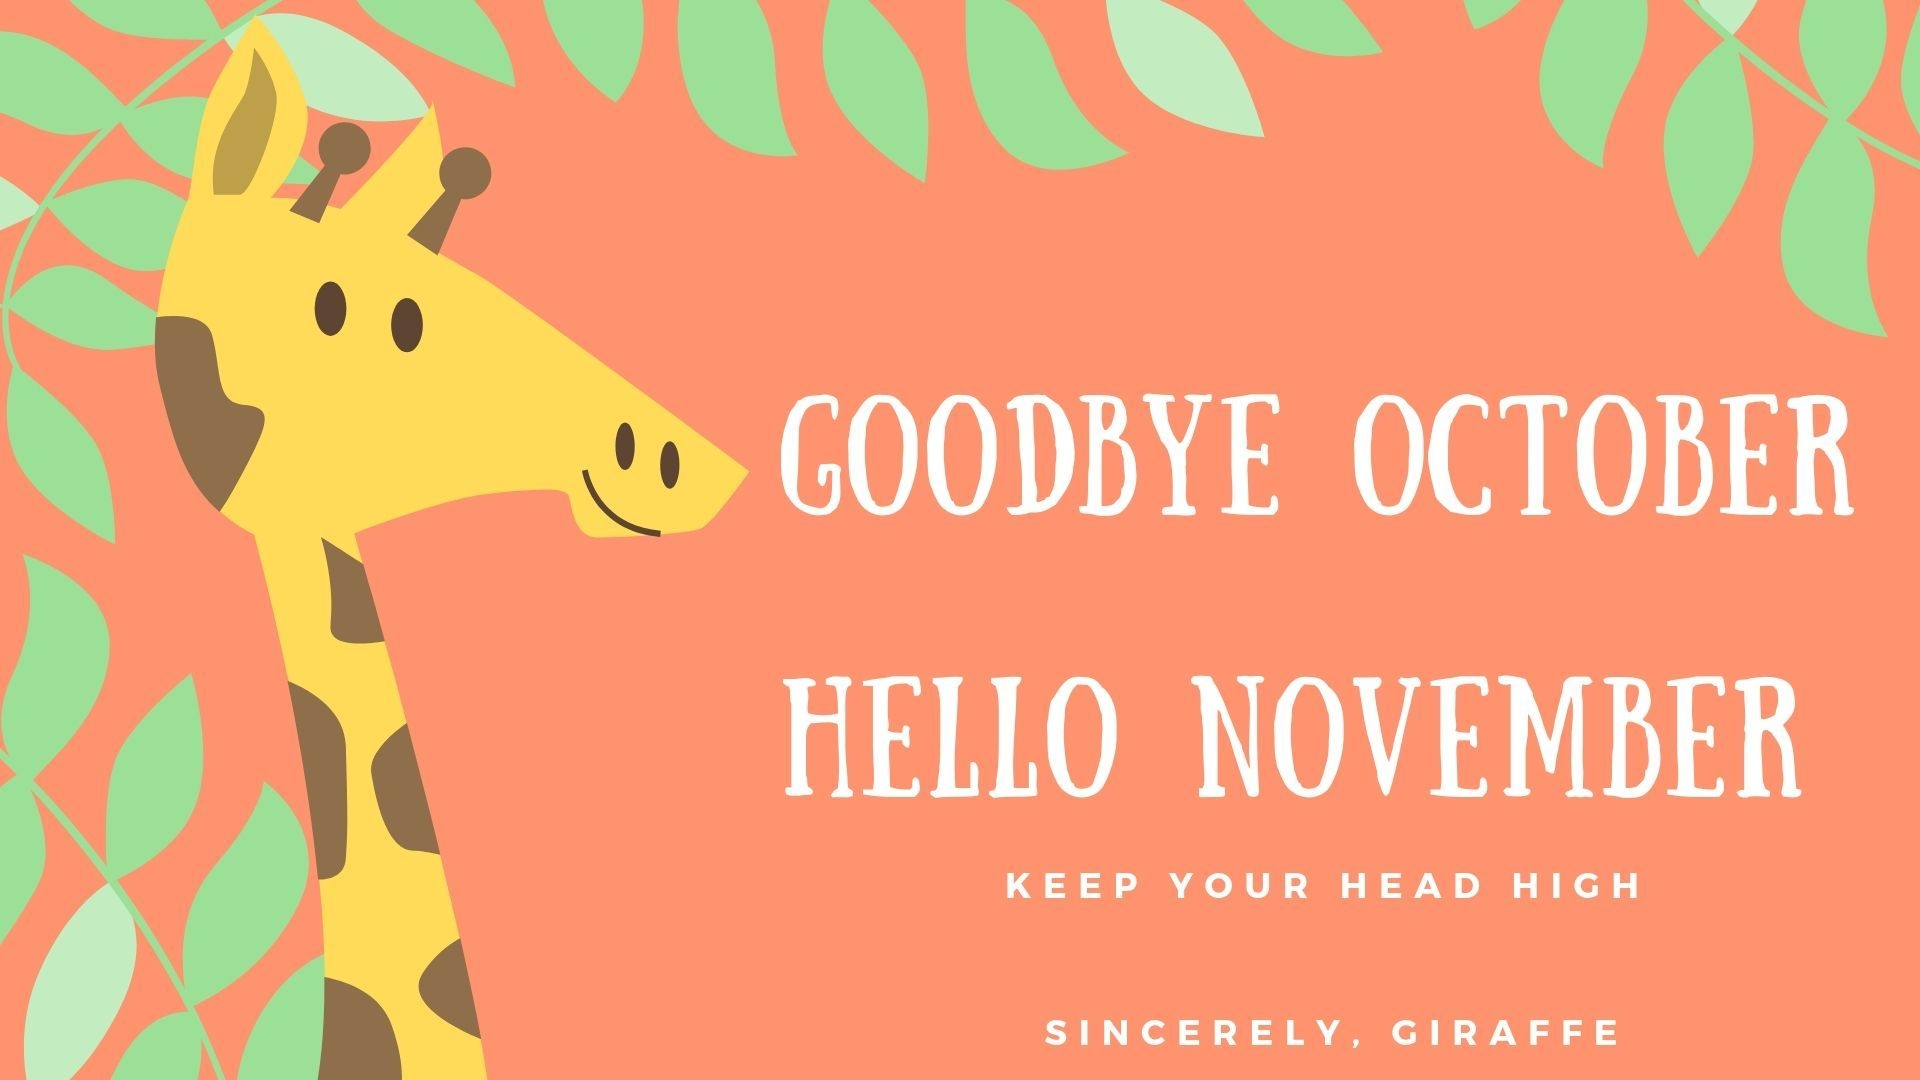 Goode October Hello November Images Quotes Wallpapers